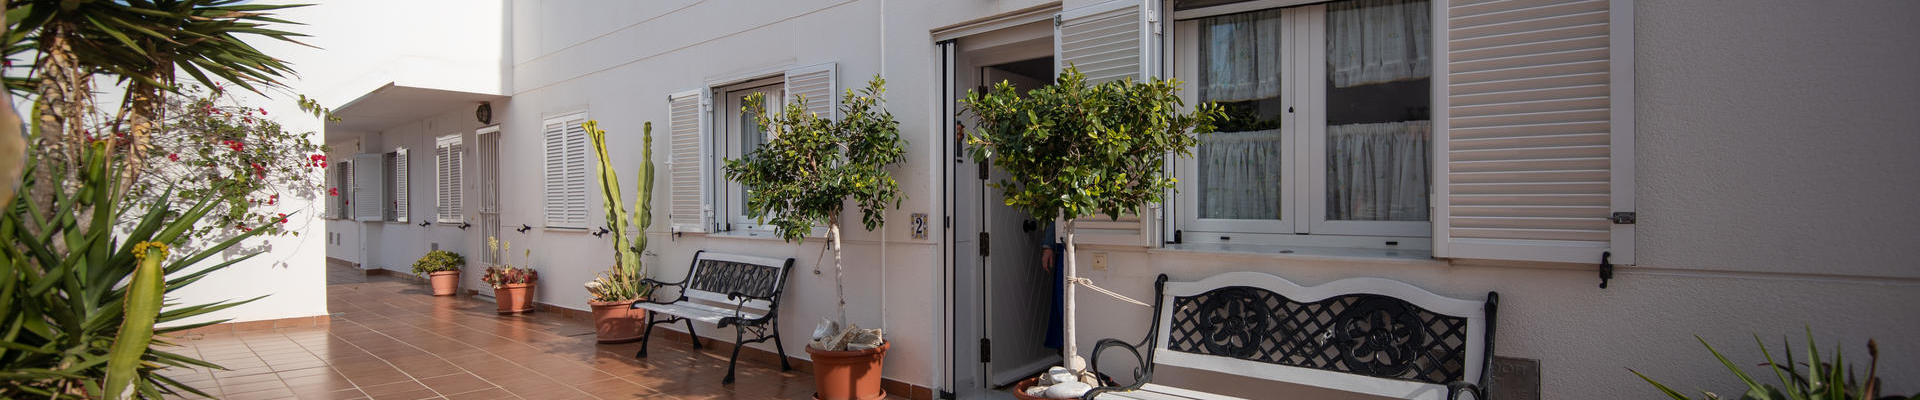 A1400: 3 Bedroom Apartment for Sale